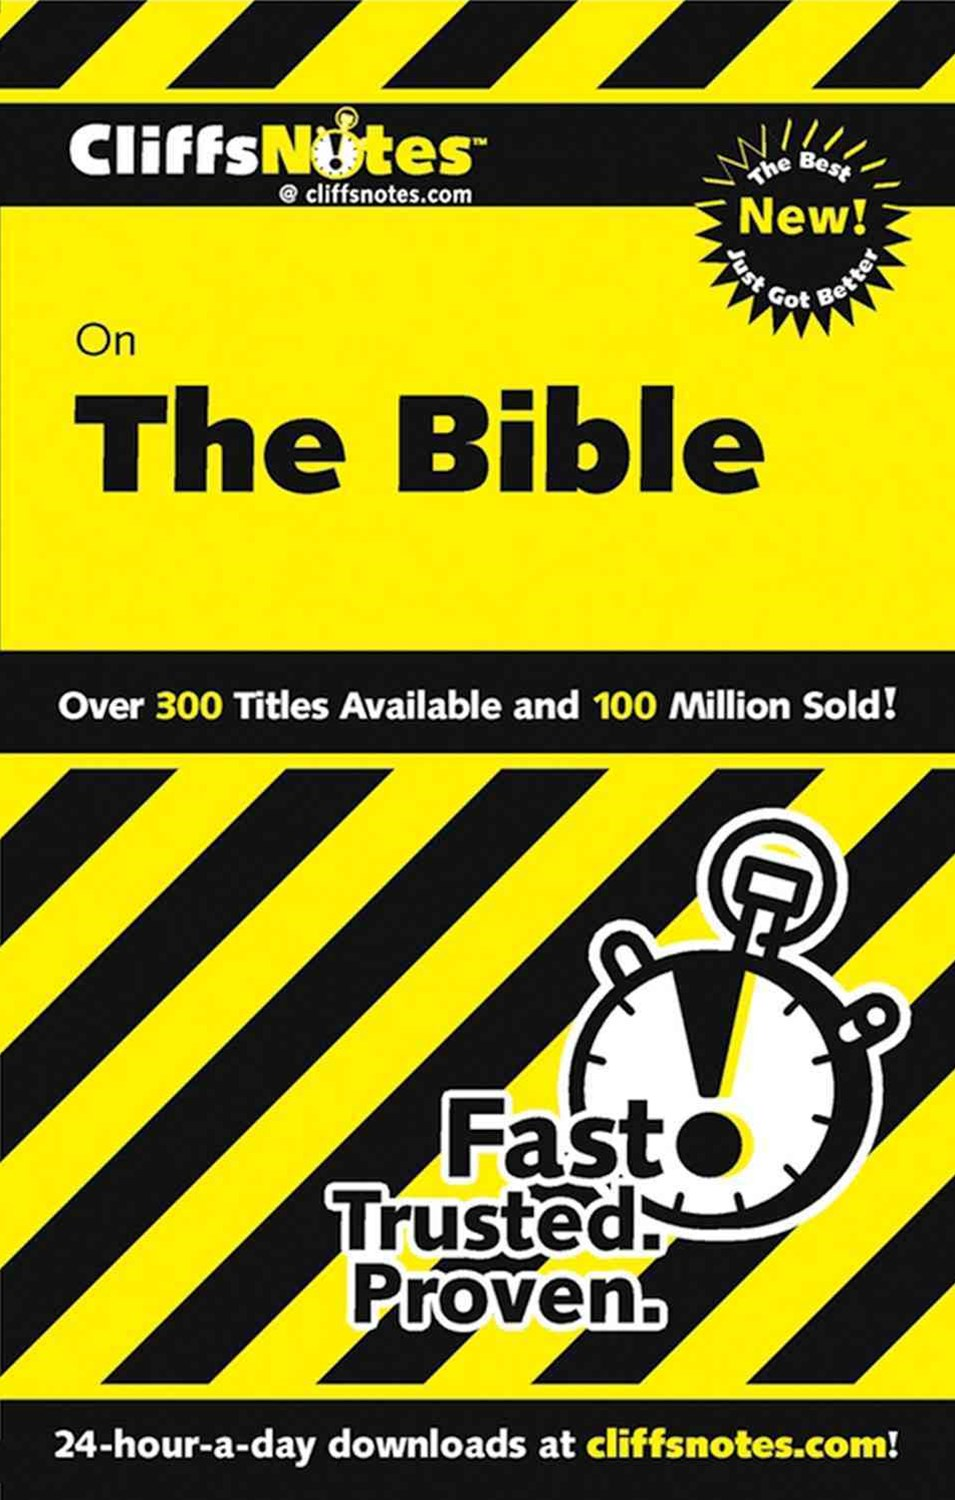 CliffsNotes on The Bible: Revised Edition